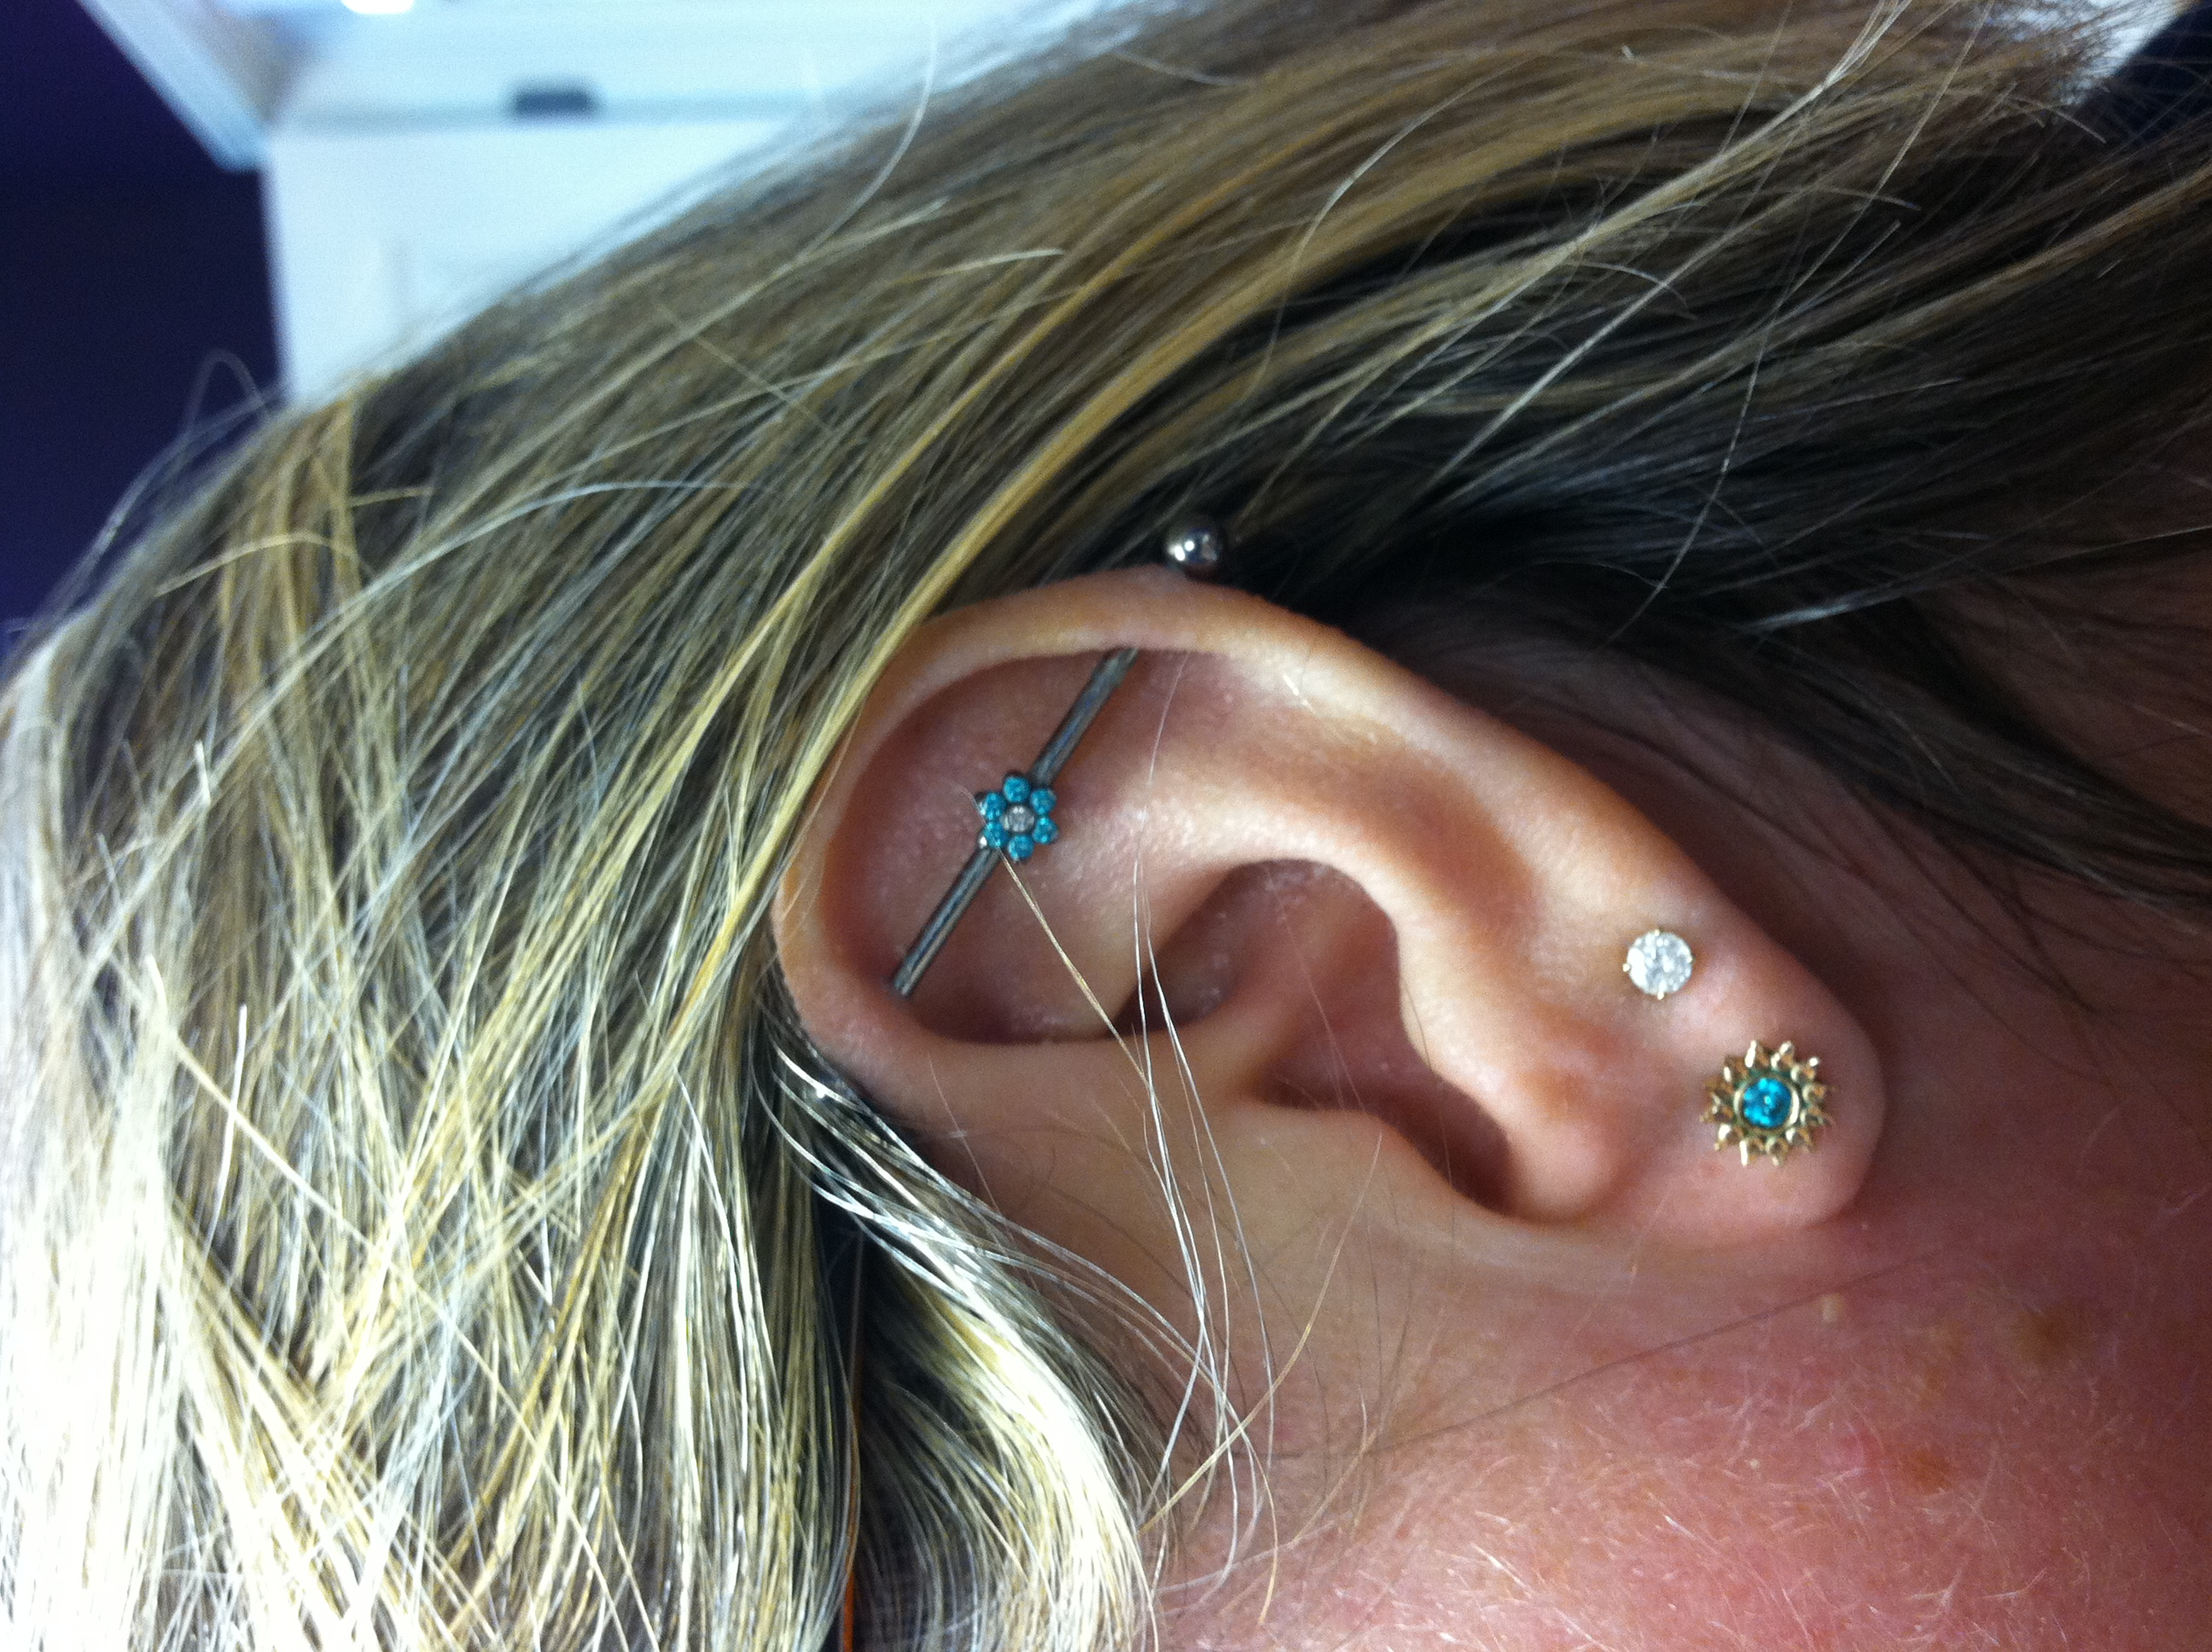 industrial ear piercing, jewelry